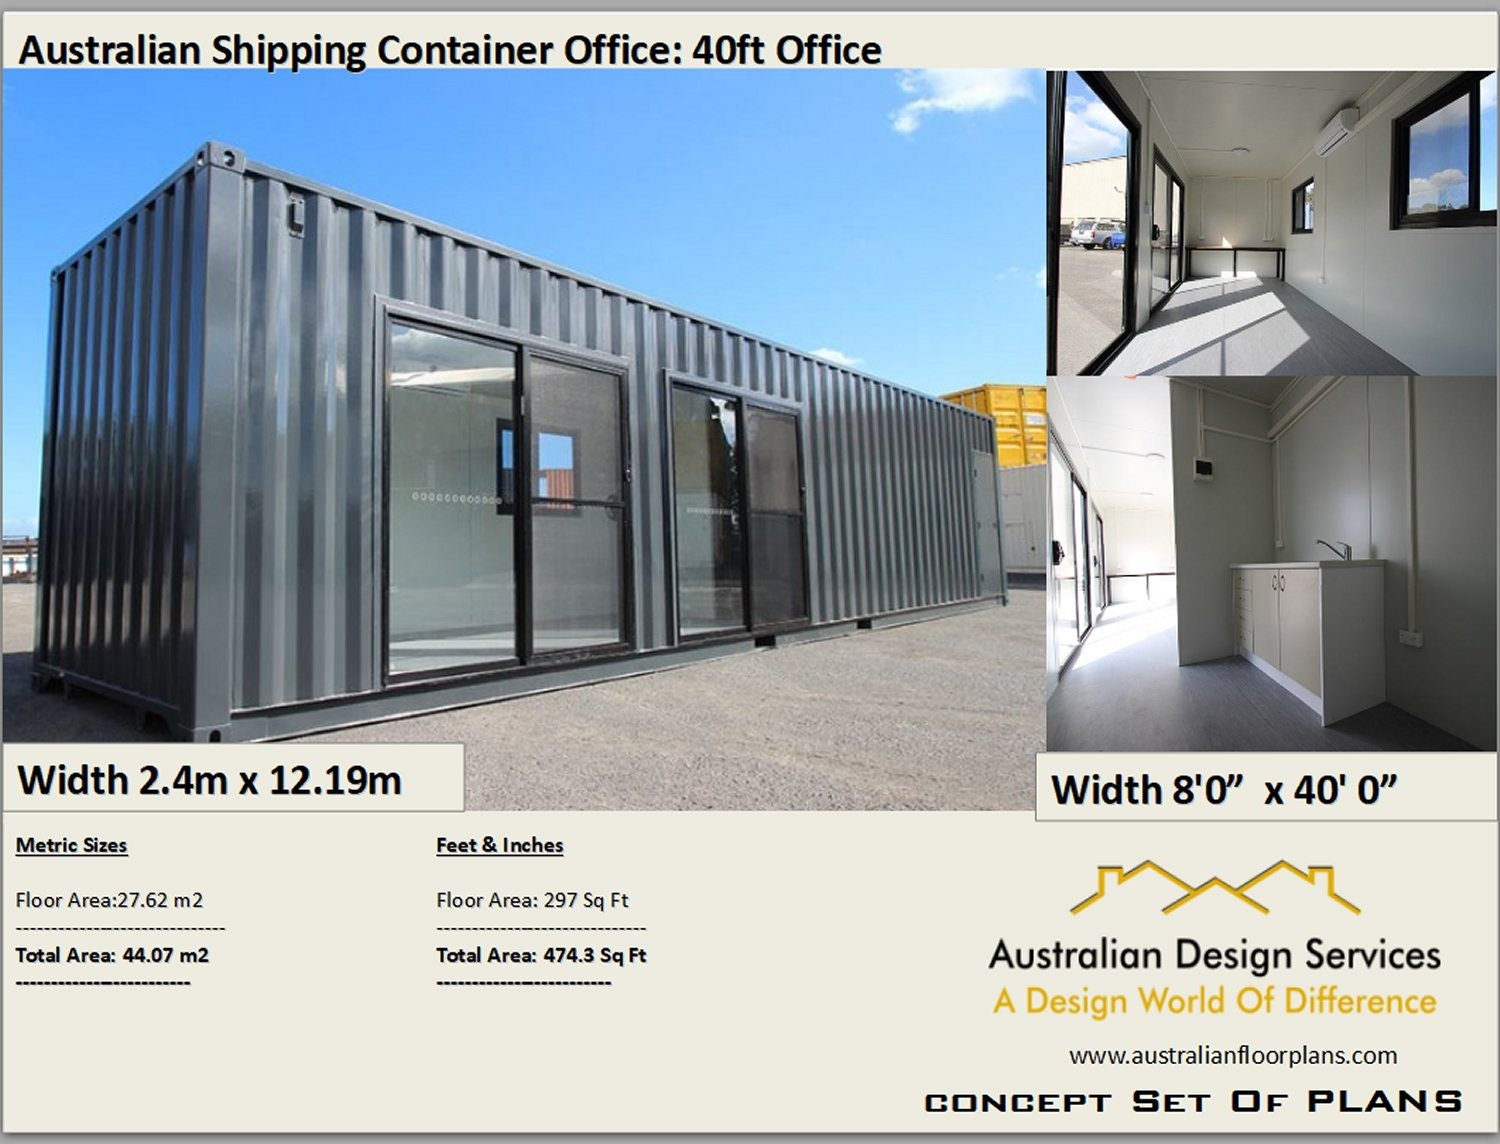 40 Shipping Container >> Transportable Office 40 Foot Shipping Container Office Construction Office Plans Blueprints Usa Feet Inches Australian Metric Sizes